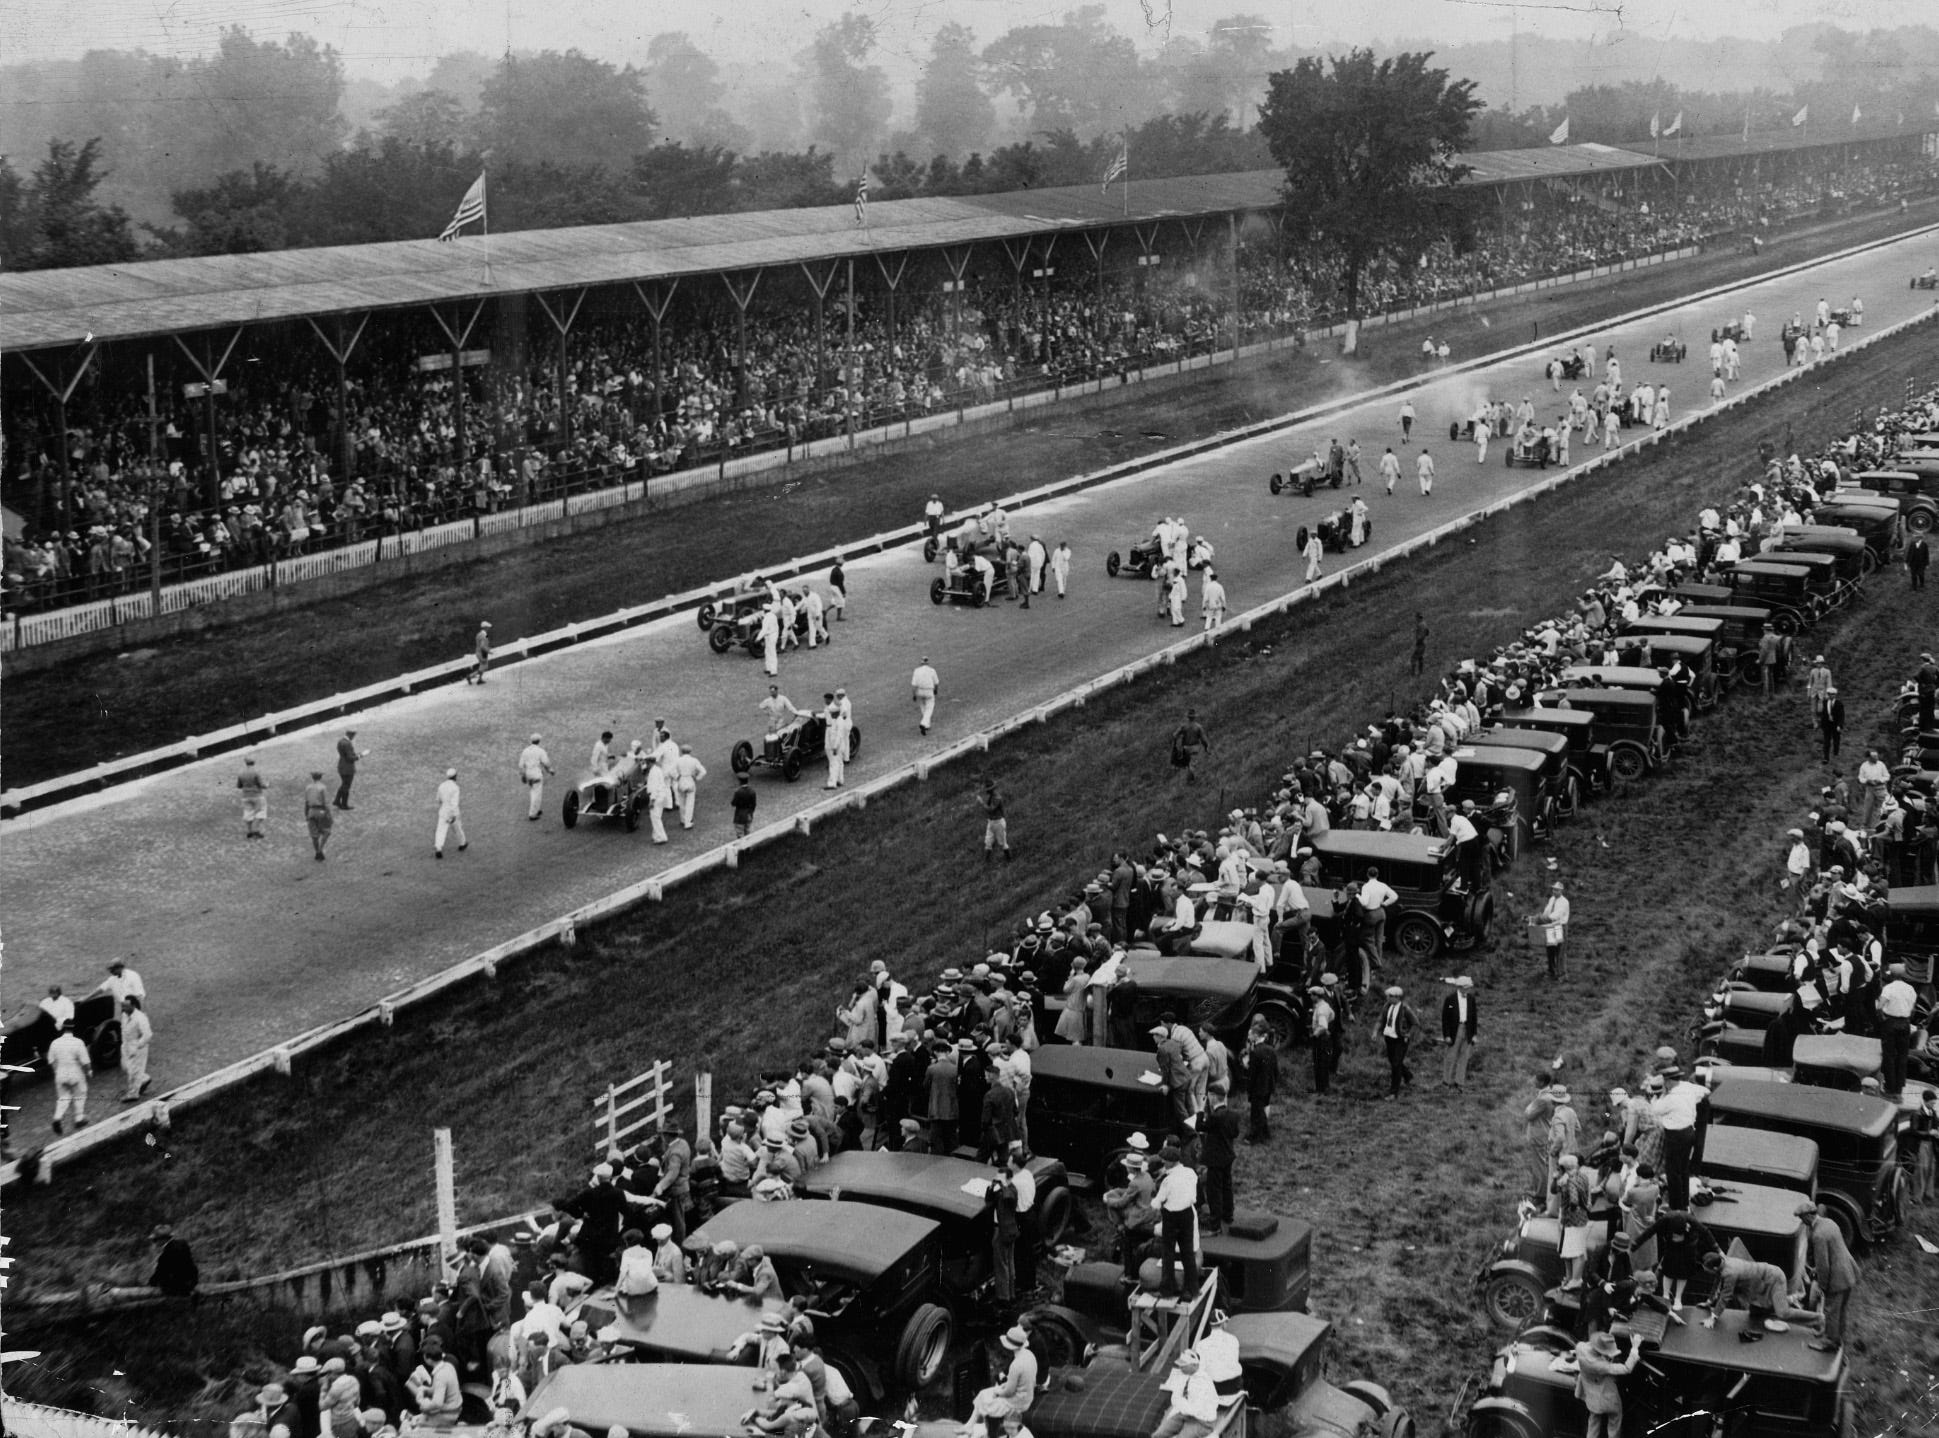 ]A record-breaking crowd filled the grandstands and swarmed around their automobiles parked trackside along the infield facing the main straightaway as the starting field was moved into position for the 1927 Indianapolis 500-Mile-Race.